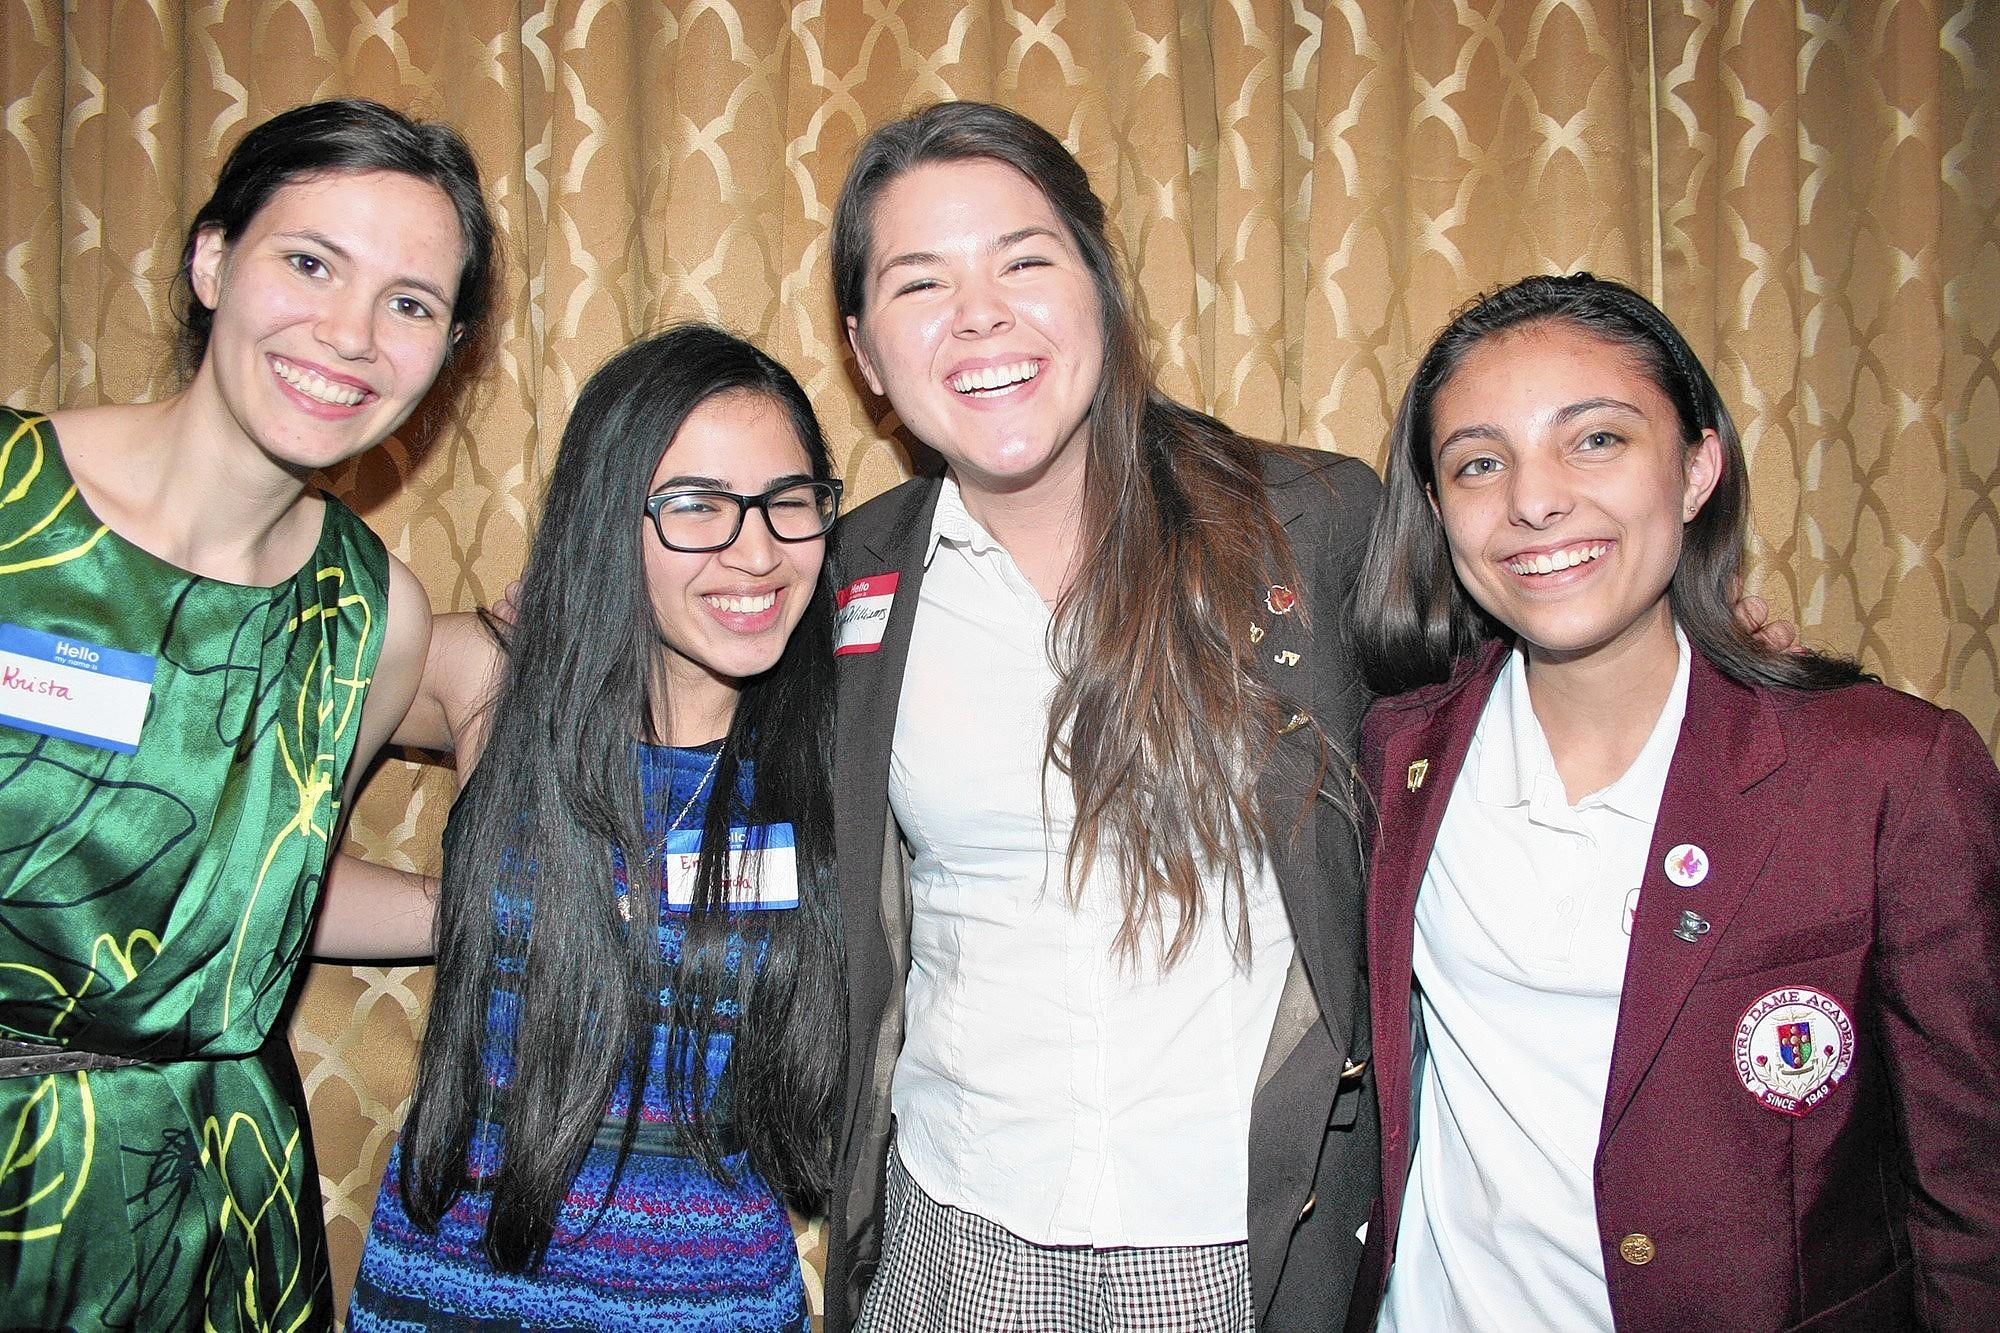 Cabrini Literary Guild writing awardees, from left: Krista Gelev, Emily Garcia, Sonya Williams and Katherine Irajpanah.